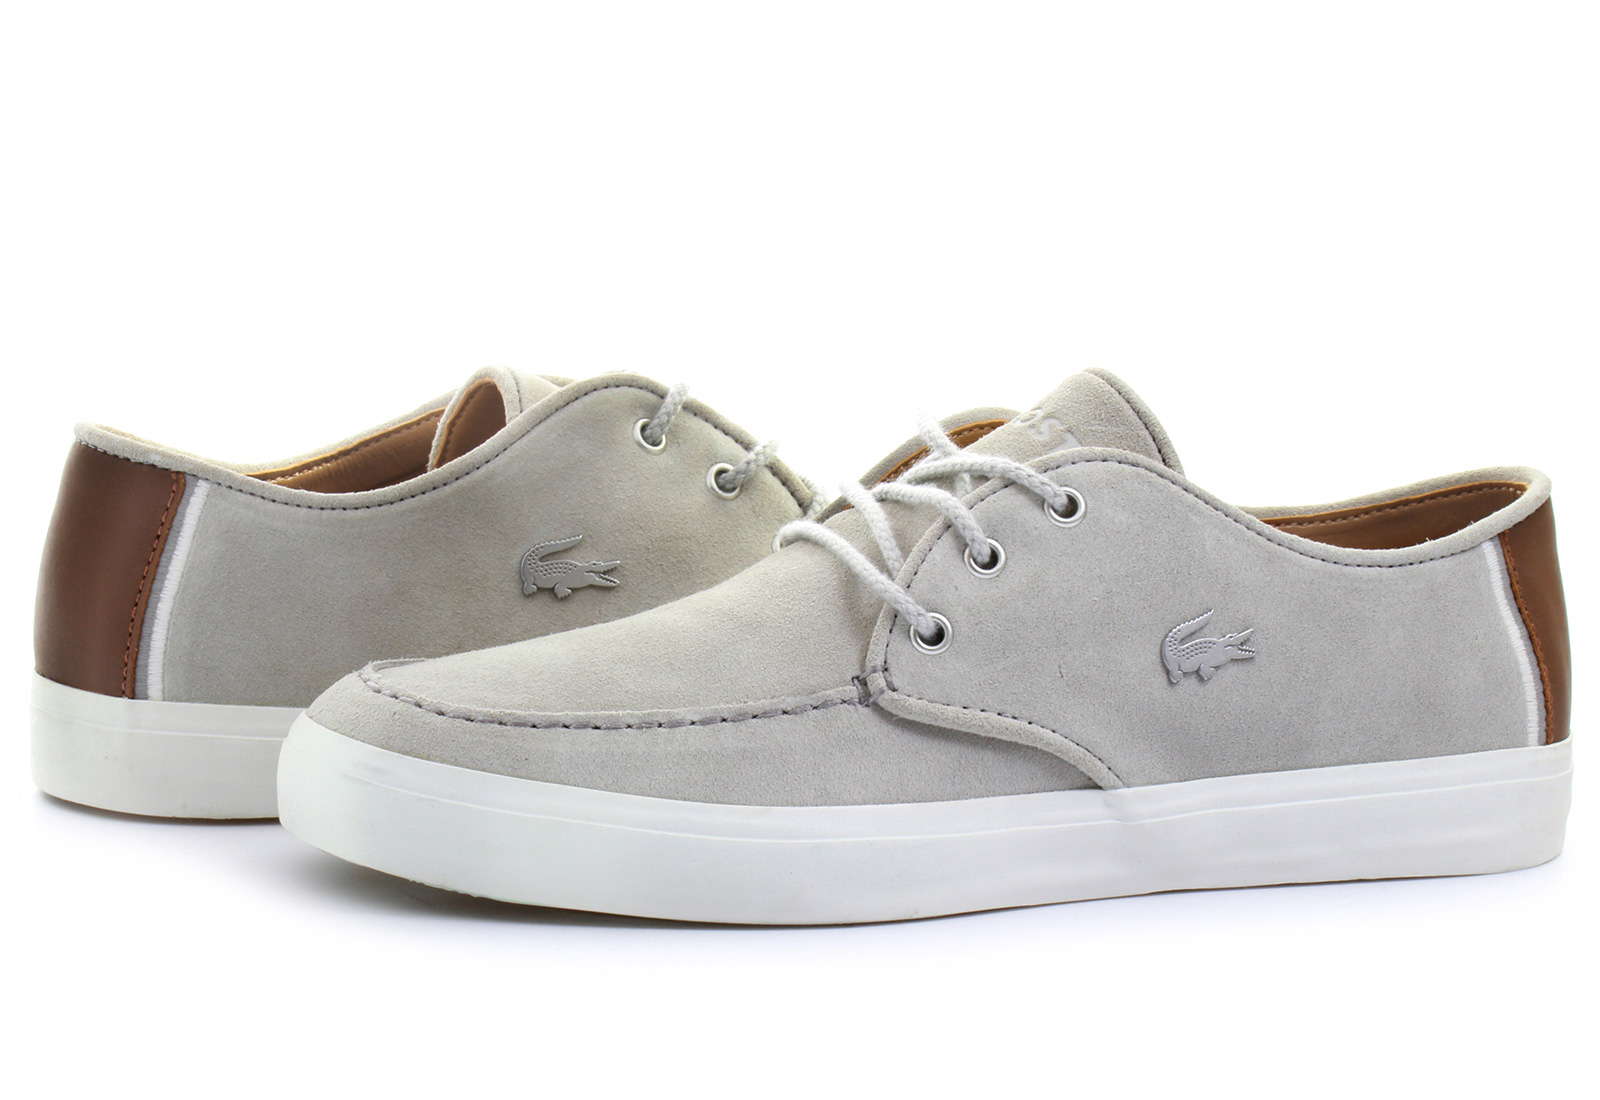 d8b102f9a Lacoste Shoes - Sevrin - 141srm1231-334 - Online shop for sneakers ...